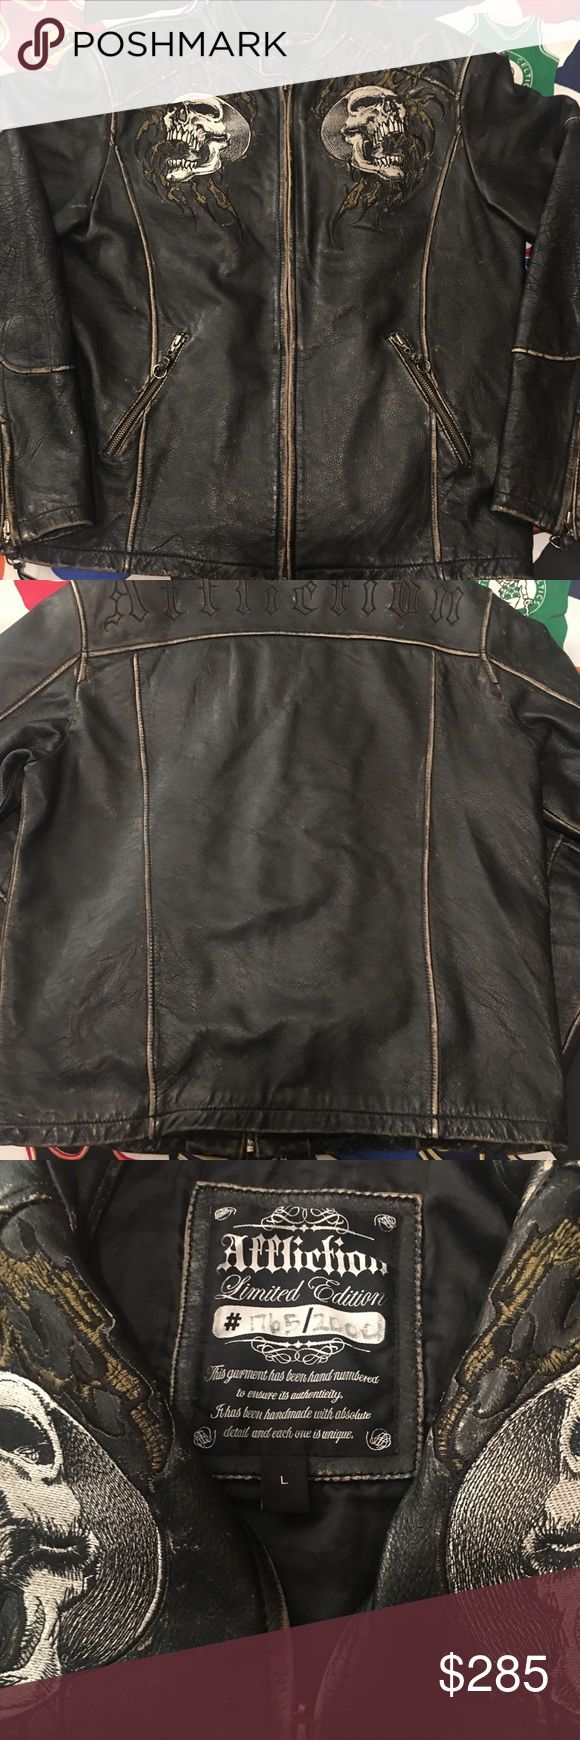 Affliction Limited Edition Skull Leather Jacket